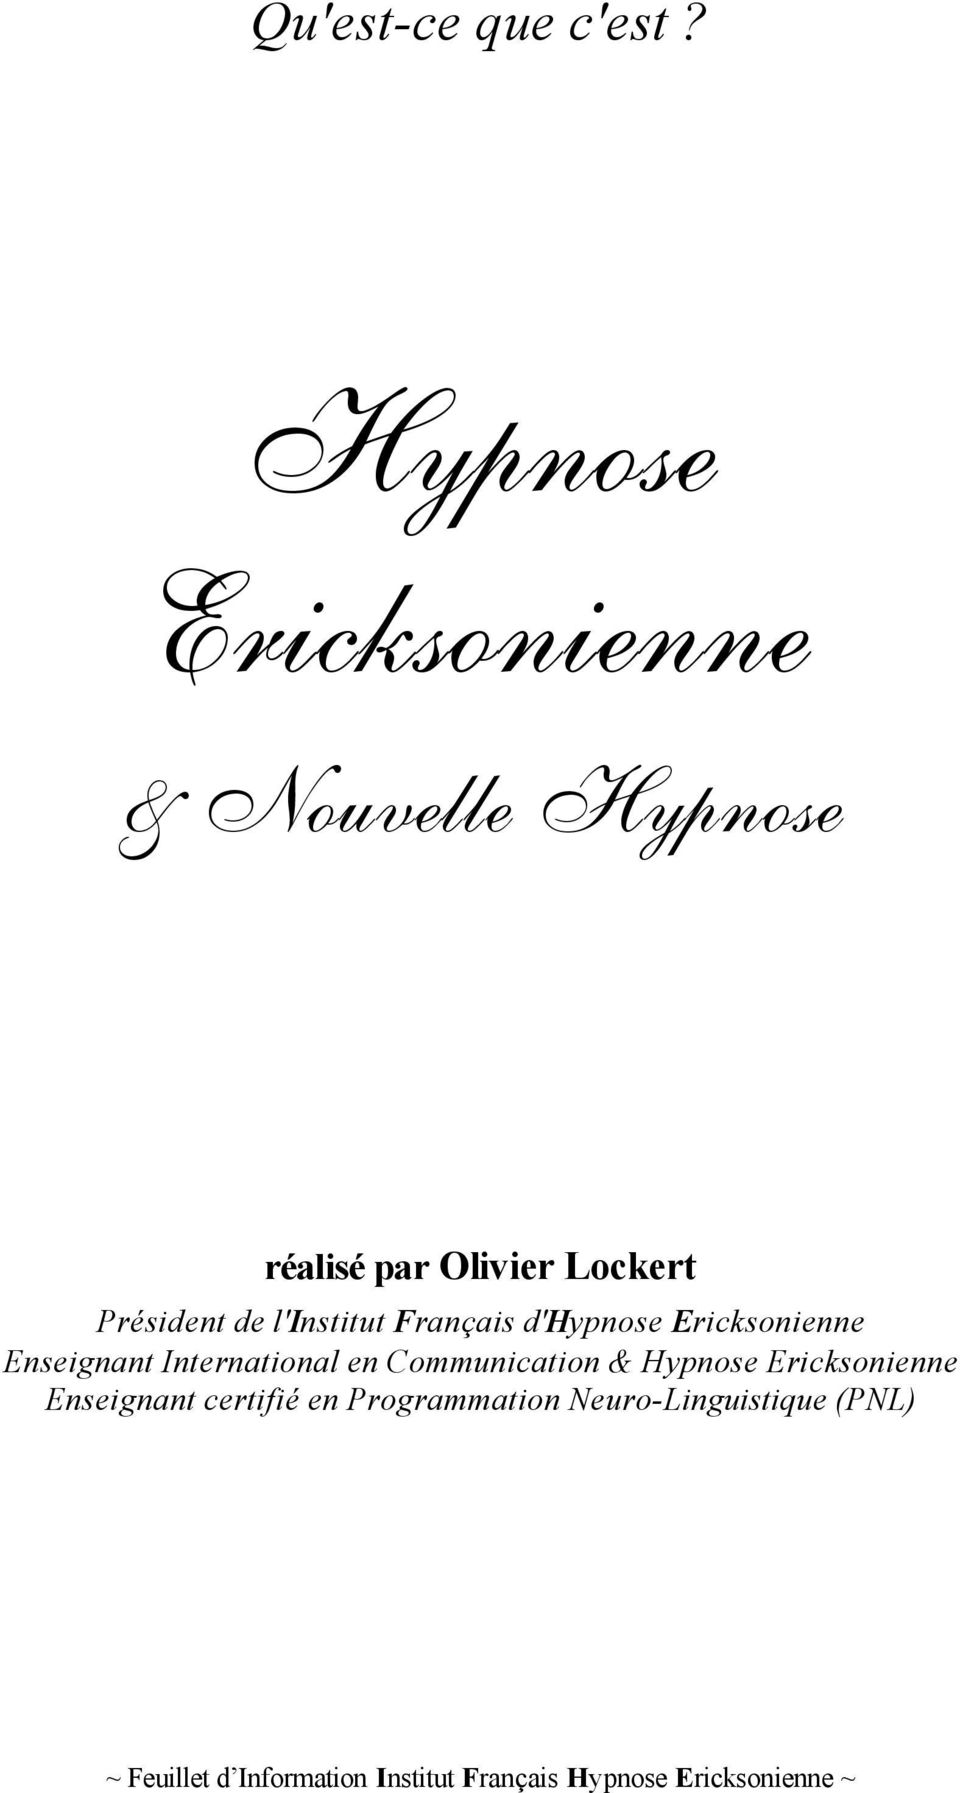 l'institut Français d'hypnose Ericksonienne Enseignant International en Communication